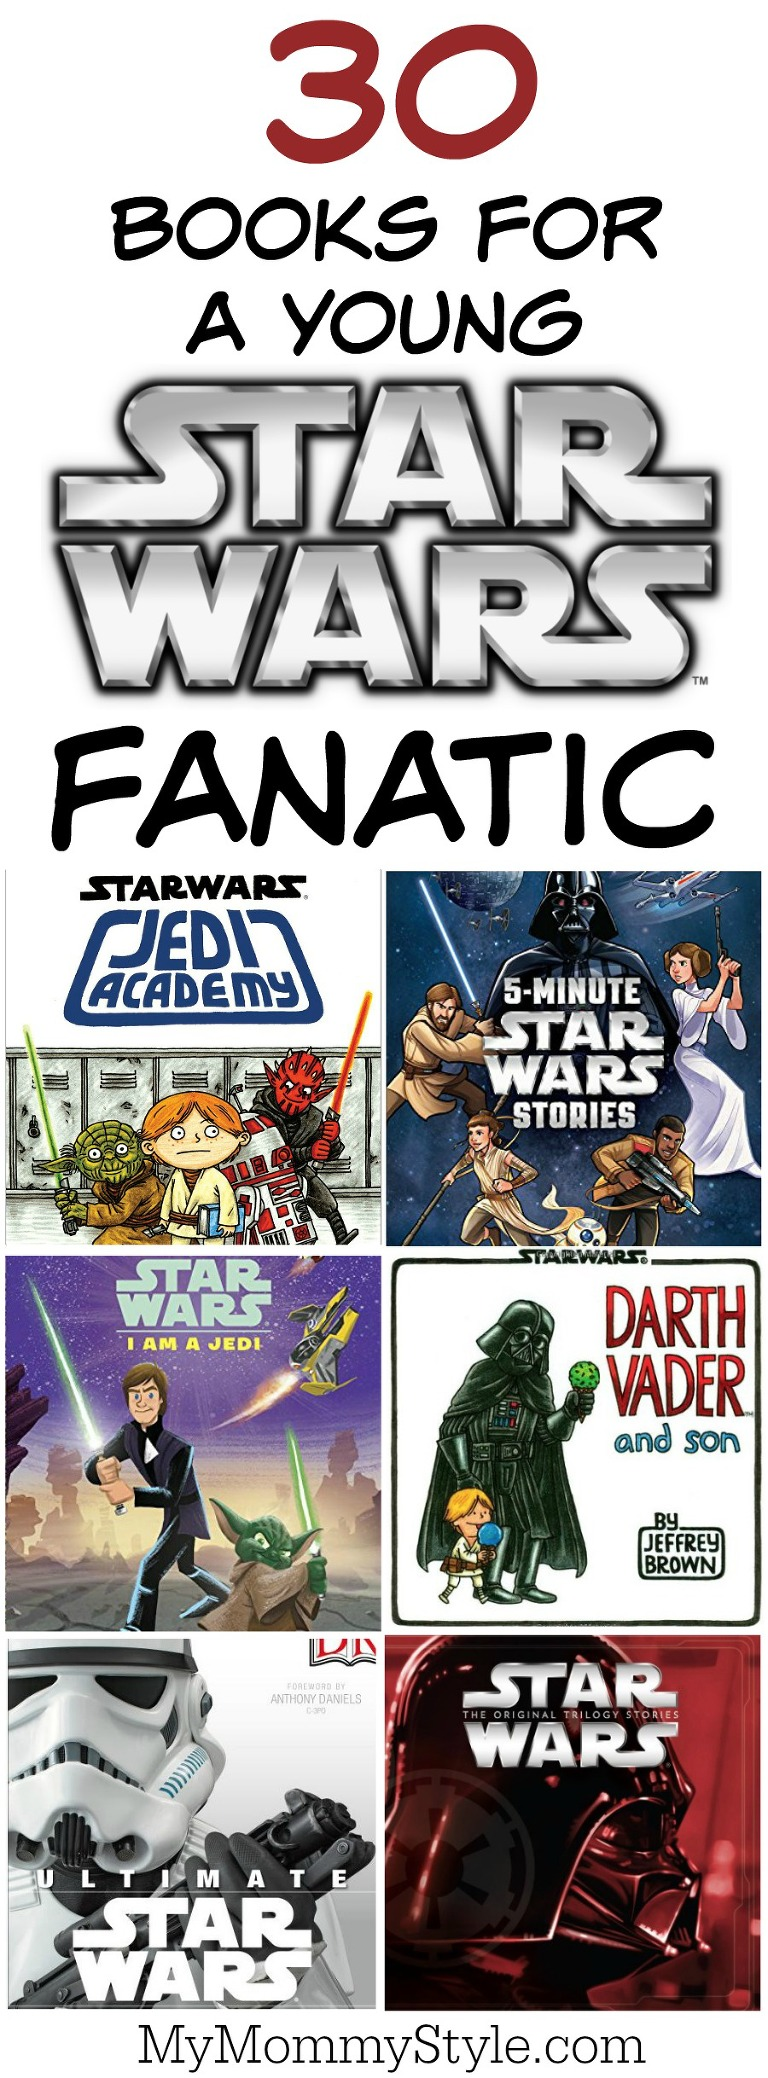 30 books for a young star wars fanatic